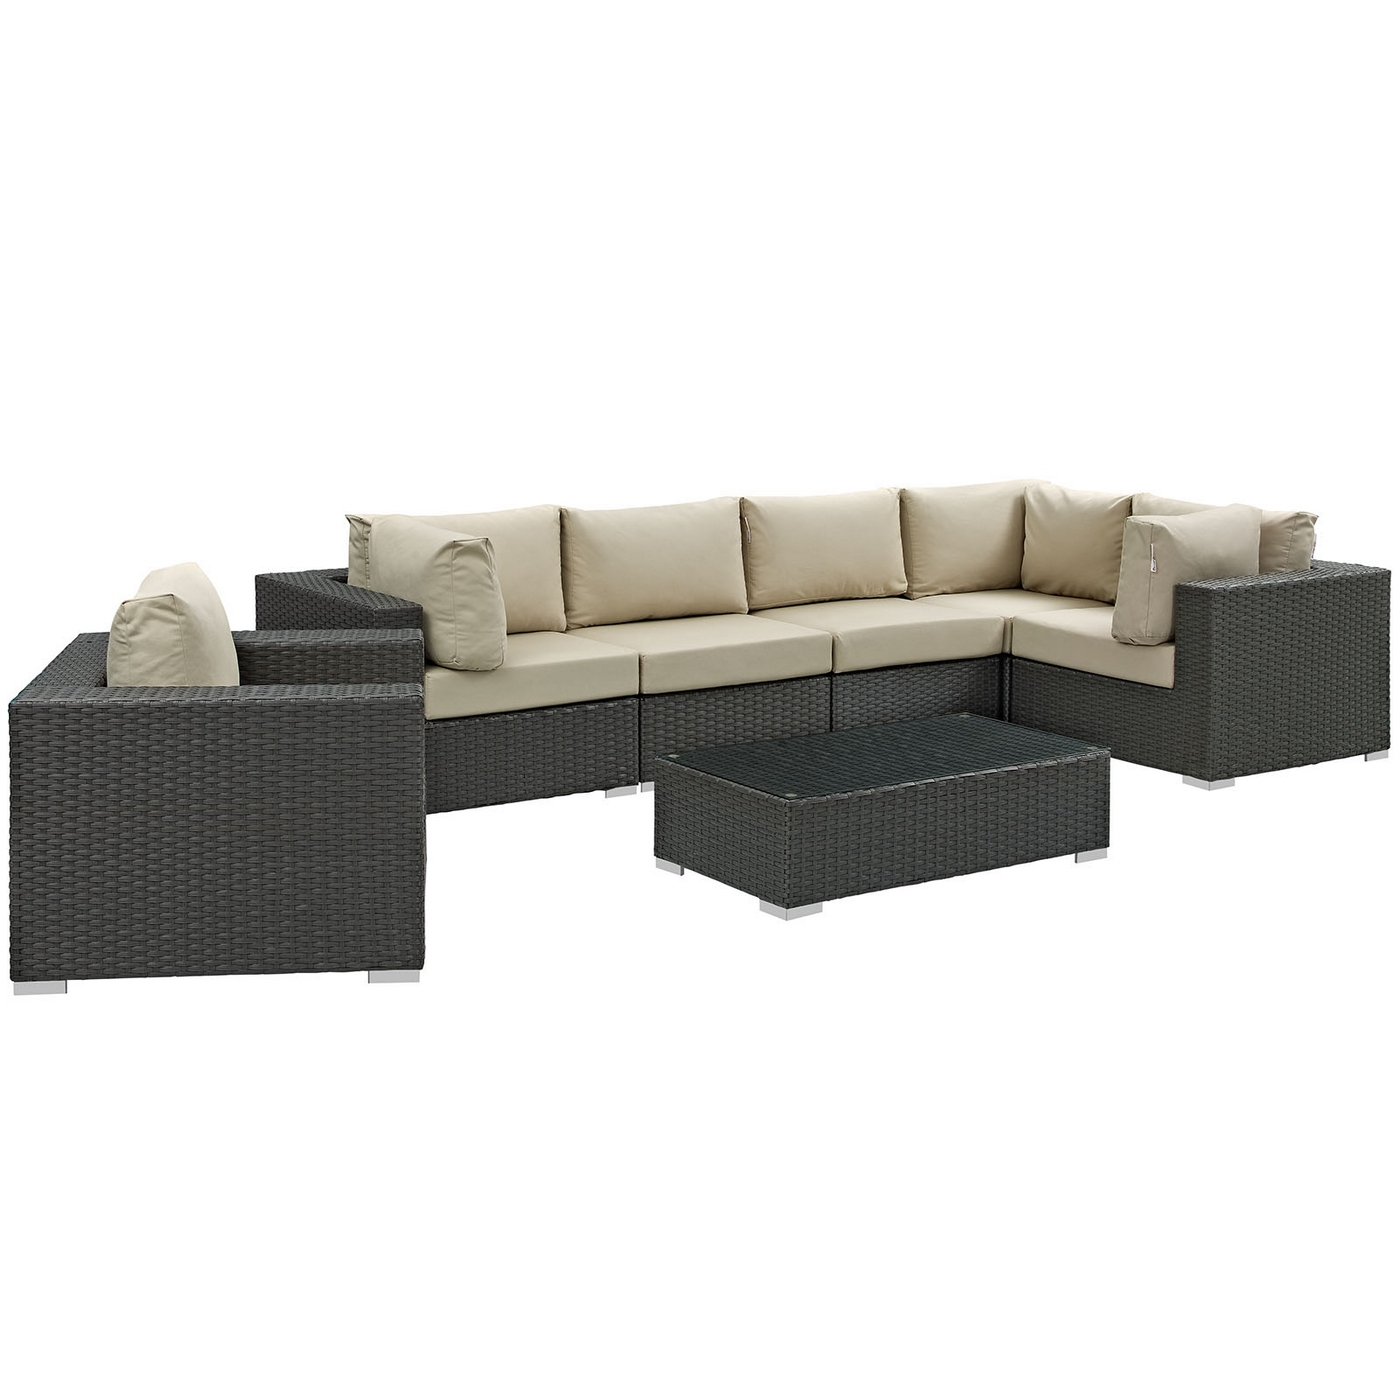 Outdoor Sunbrella Sectional Sofa